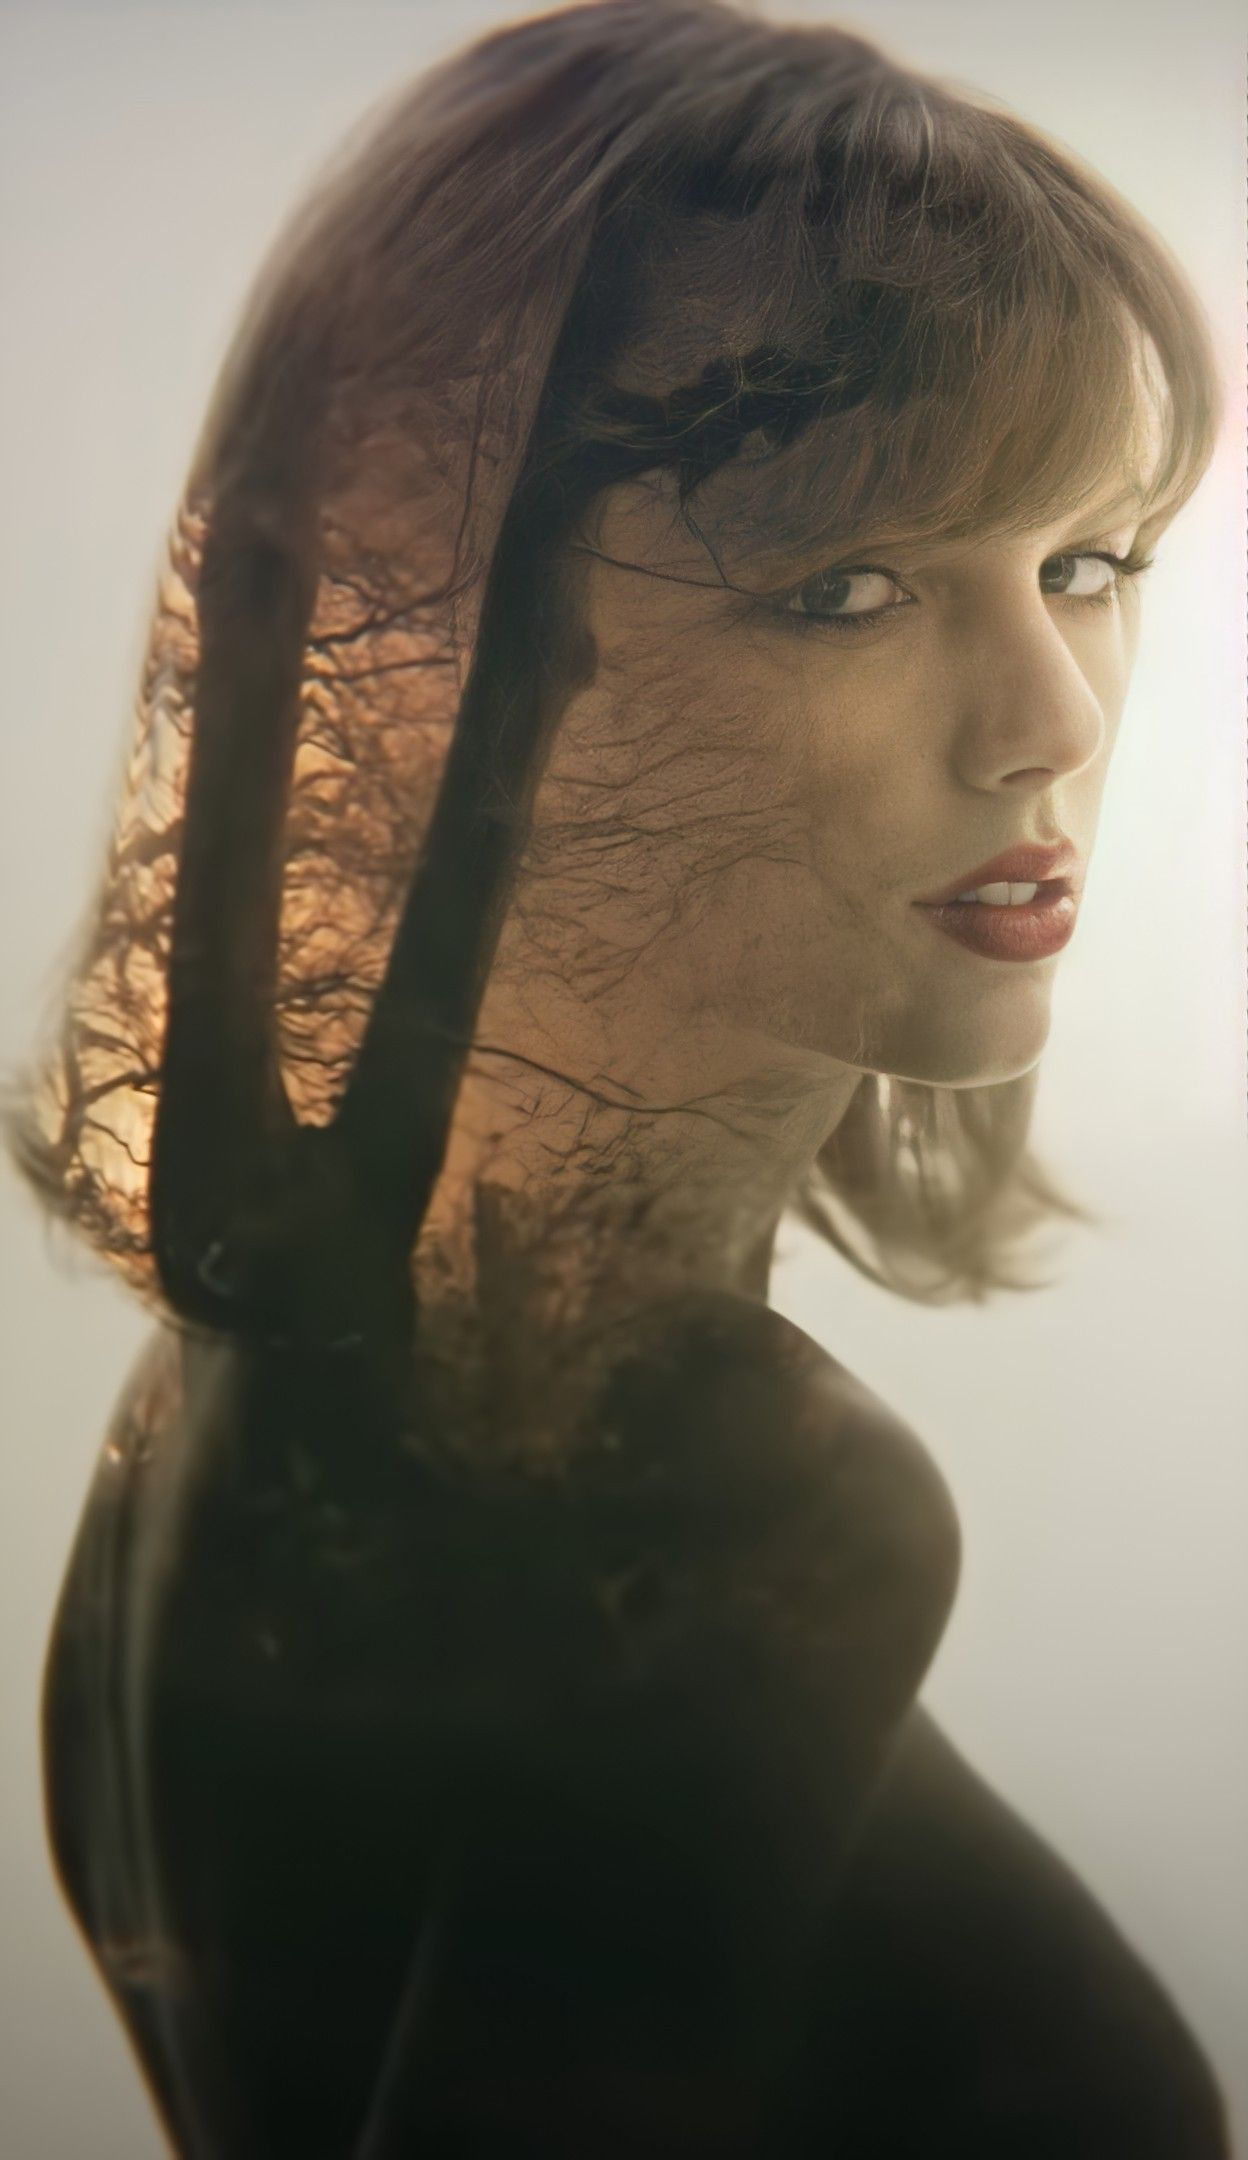 Style Wallpaper Taylor Swift Pictures Taylor Swift Album Taylor Swift Wallpaper